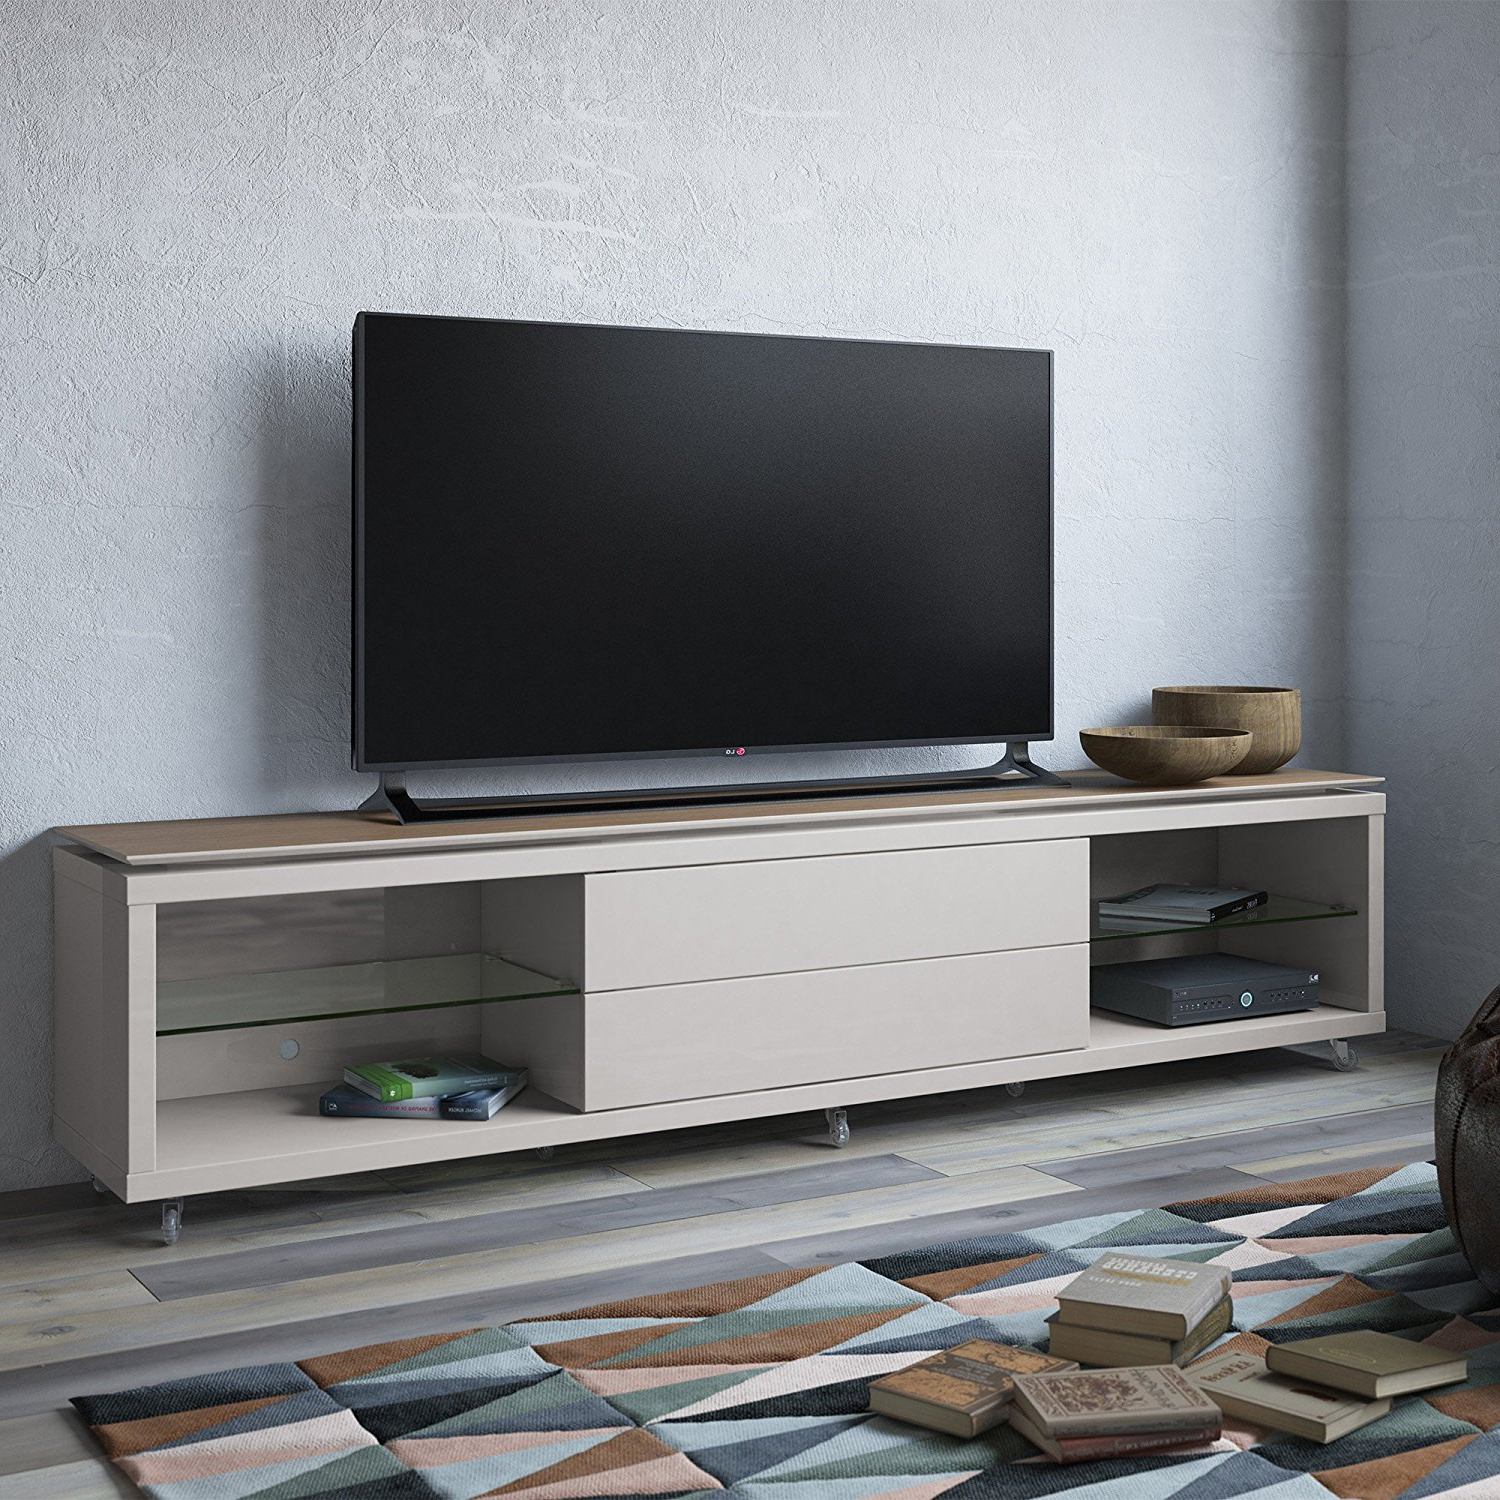 Furniture: Annabelle Black 70 Inch Tv Stand | Living Spaces Pertaining To Annabelle Black 70 Inch Tv Stands (Gallery 1 of 20)